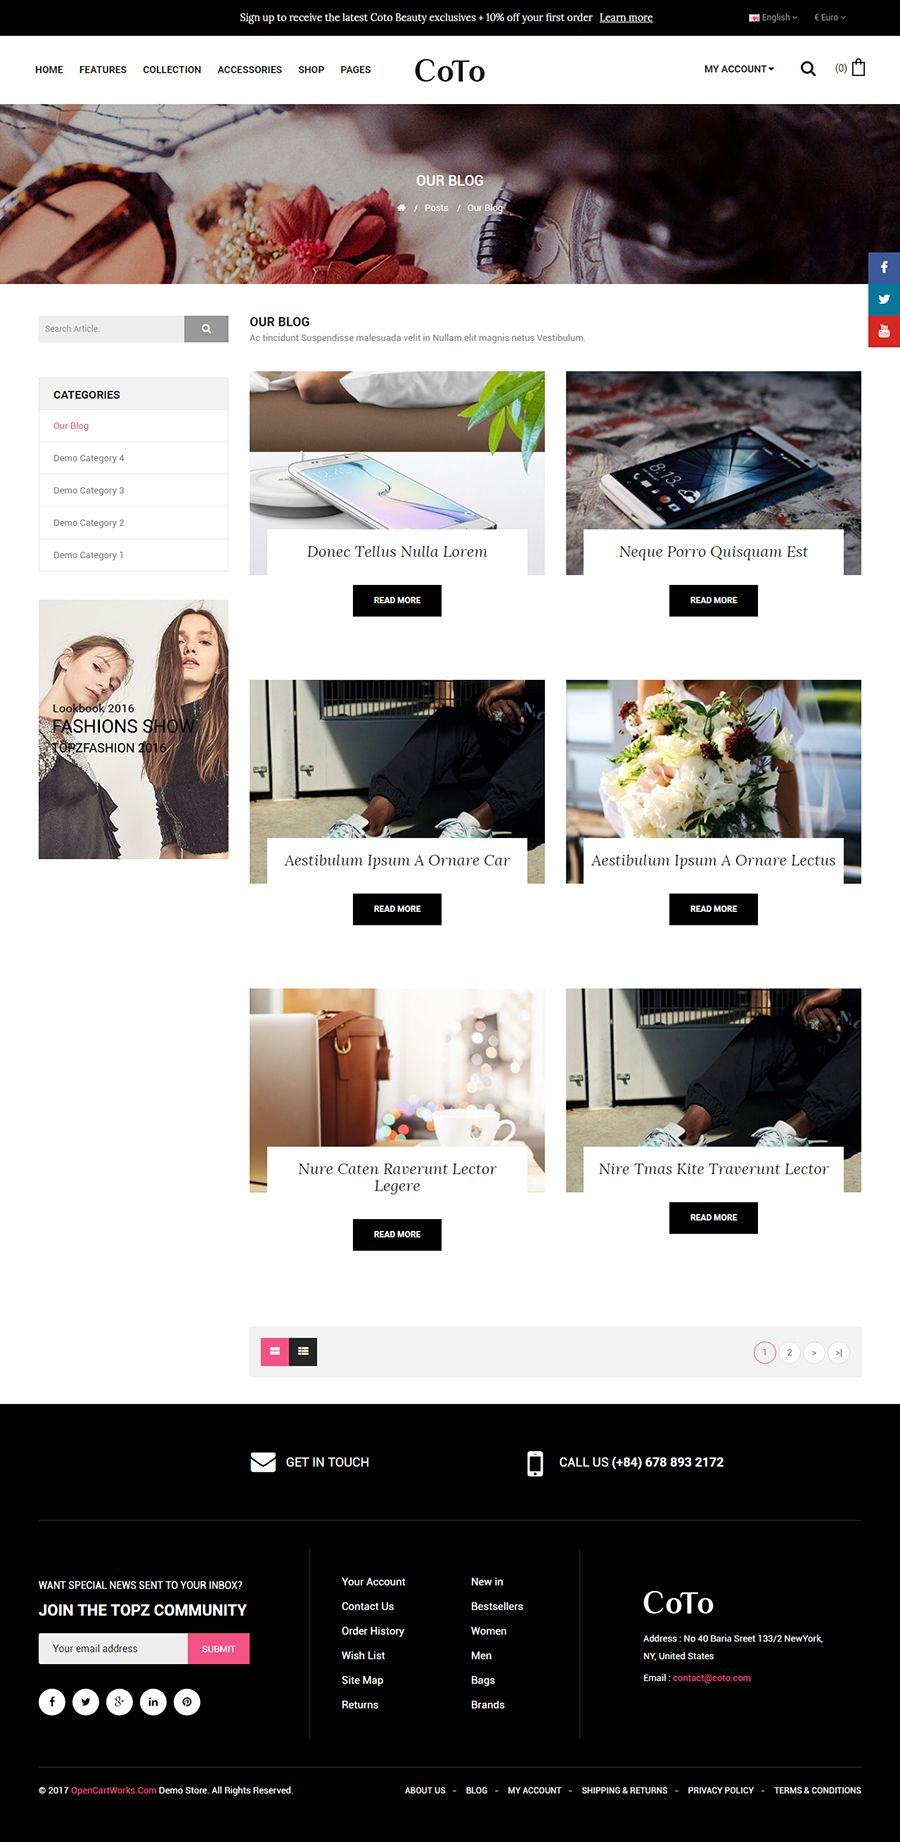 Coto - The Cosmetic eCommerce OpenCart Theme Screenshot 7